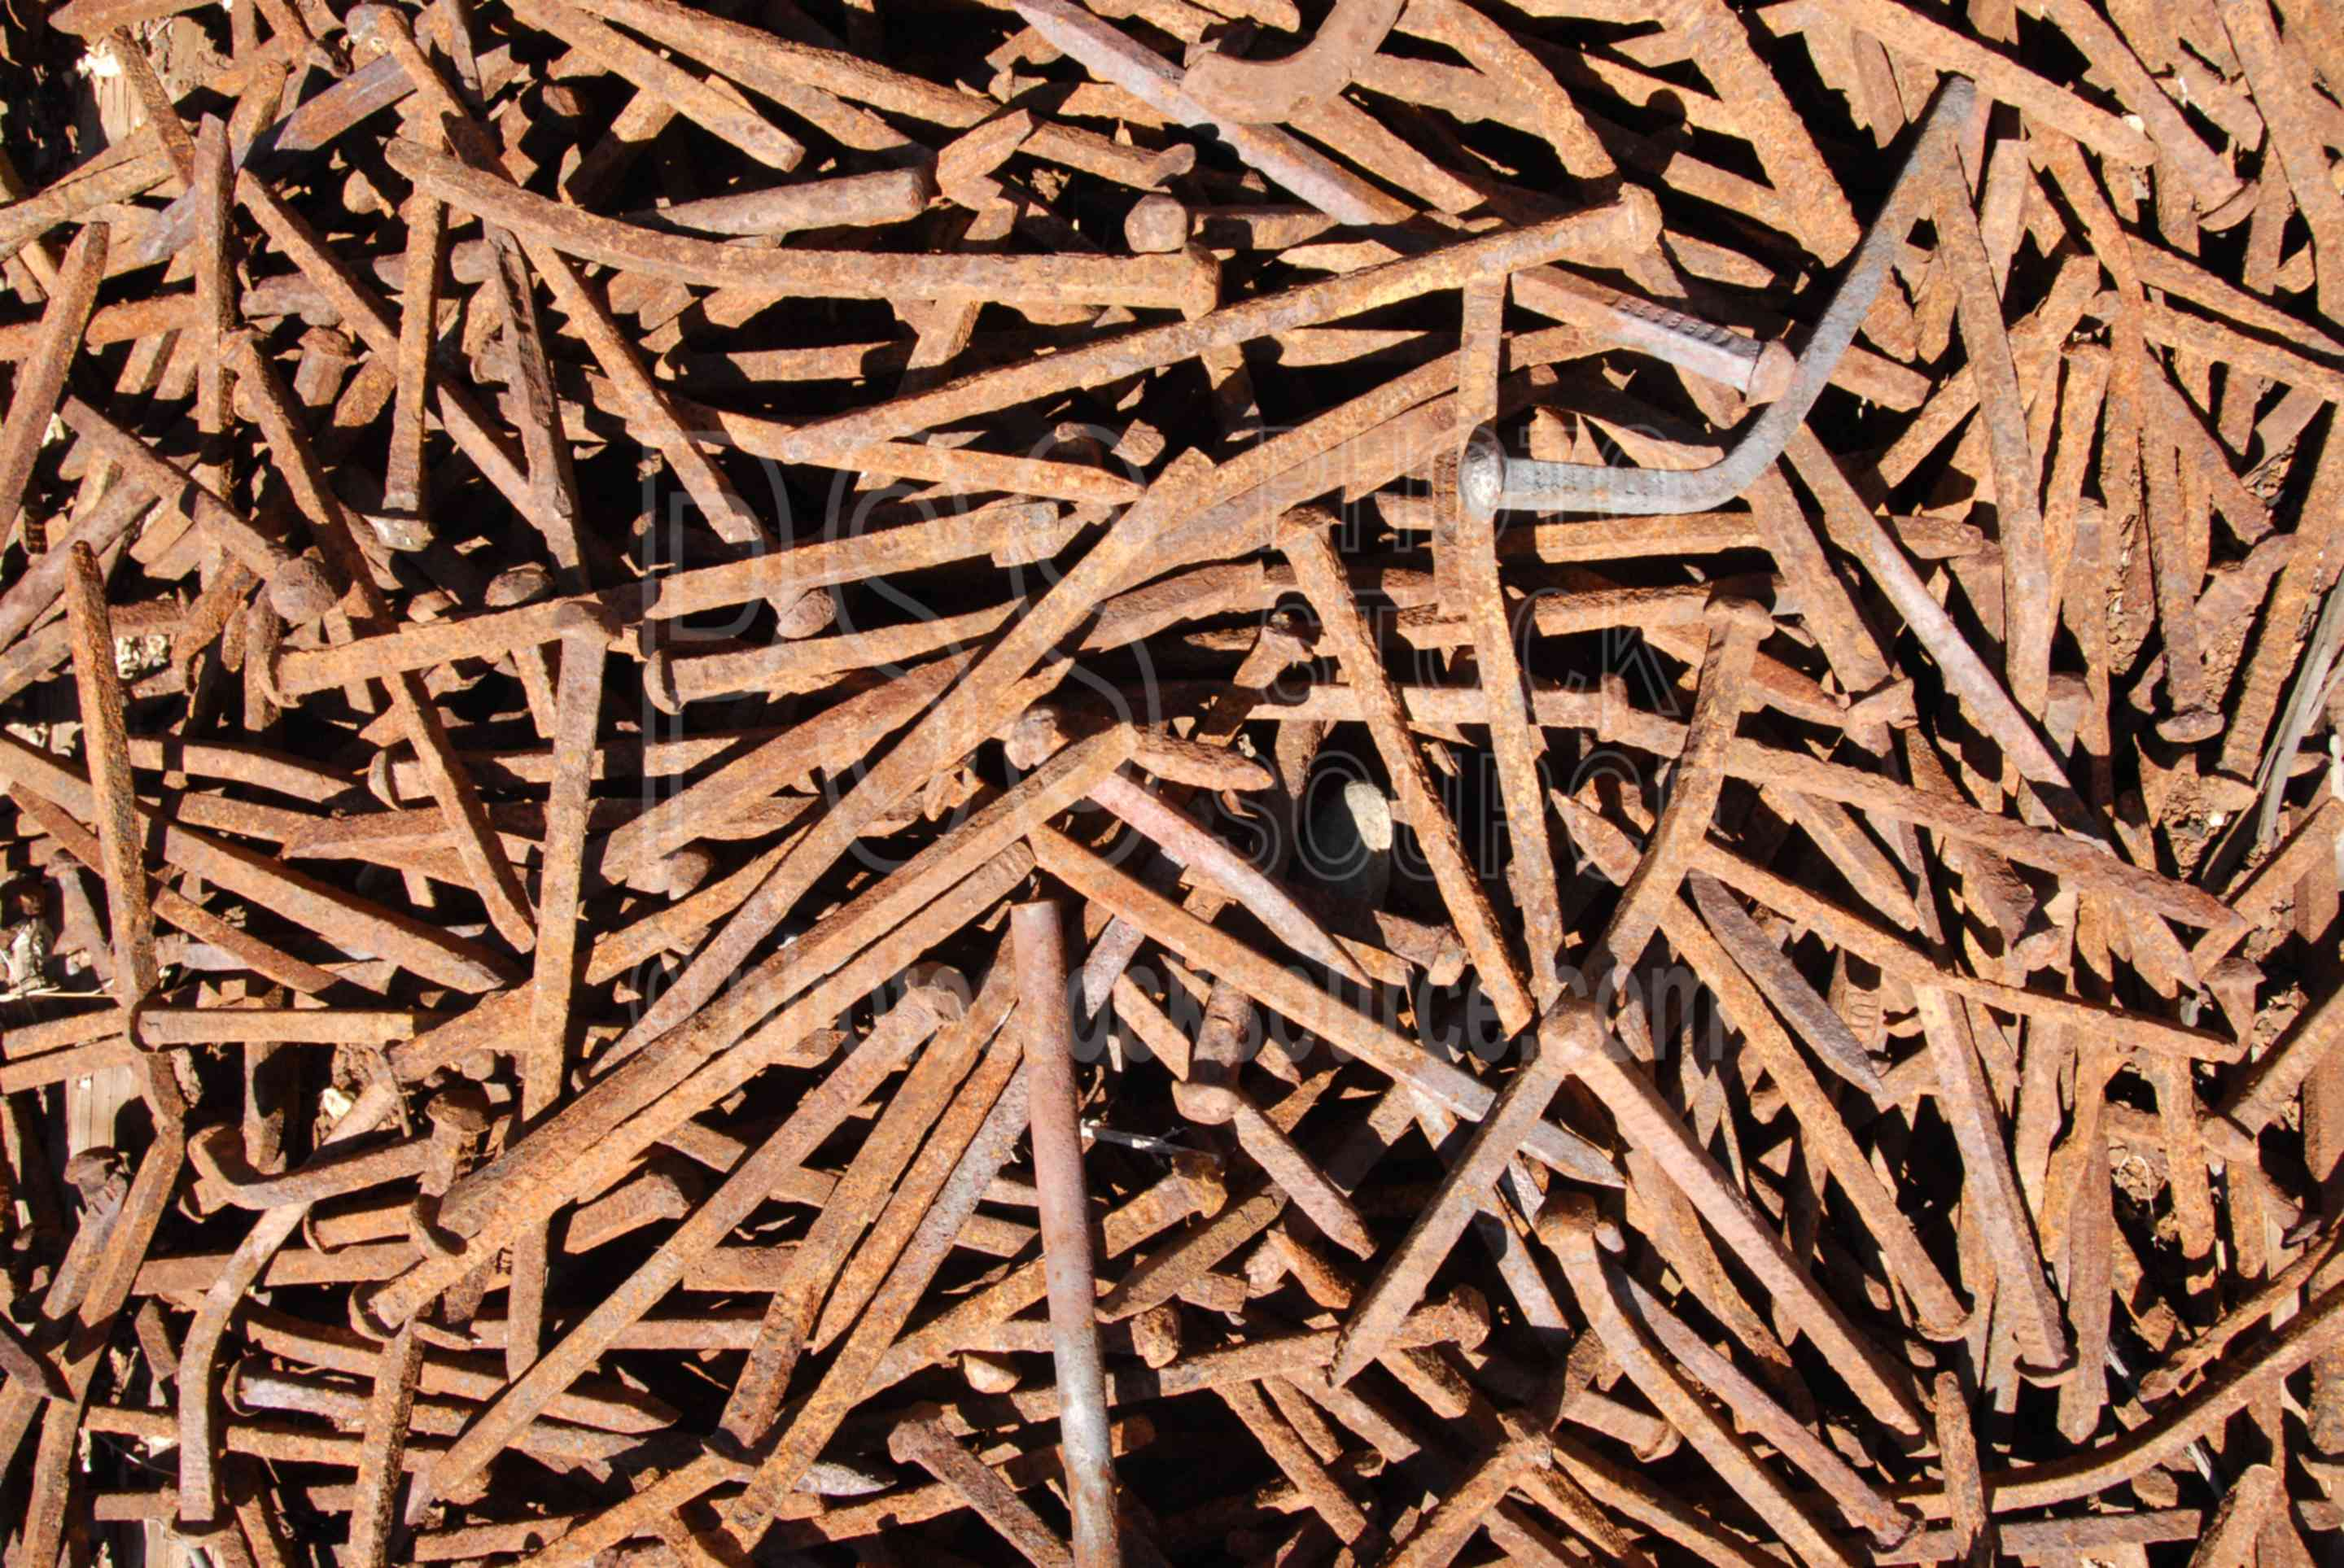 Rusty Nails,iron,metal,nails,rust